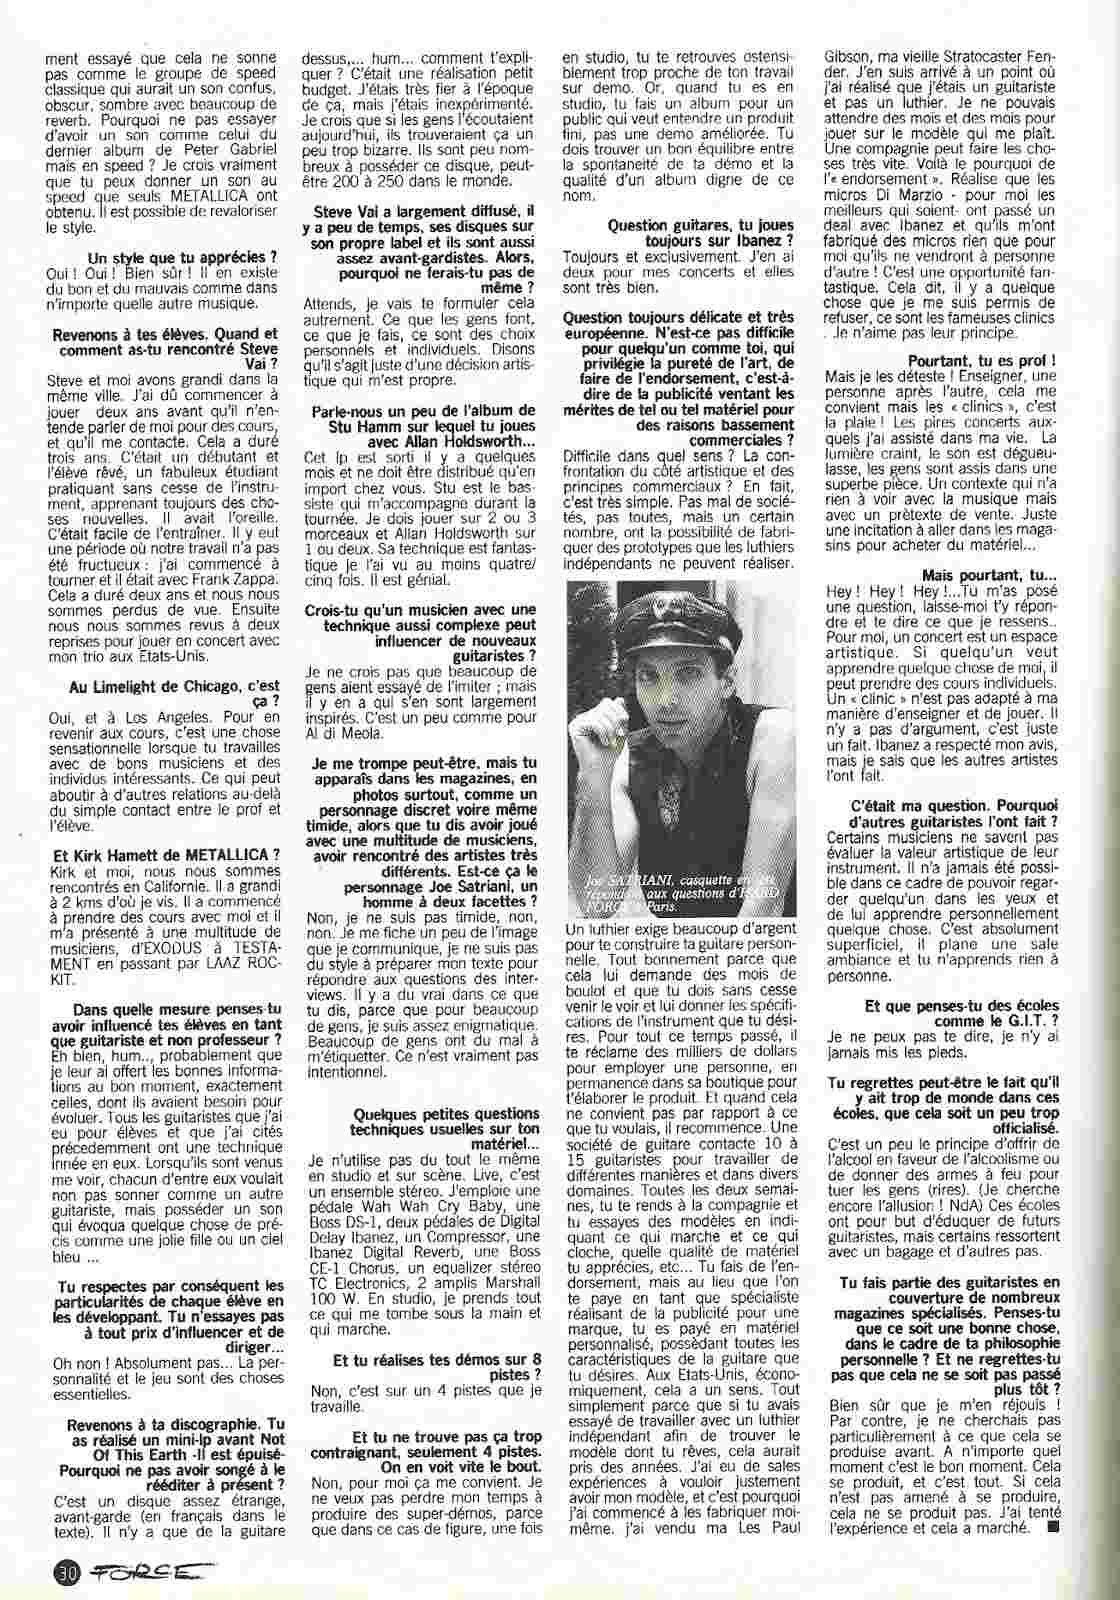 JOE SATRIANI Hey Joe ! (HARD FORCE Septembre 1988) Archive à lire Numyri49